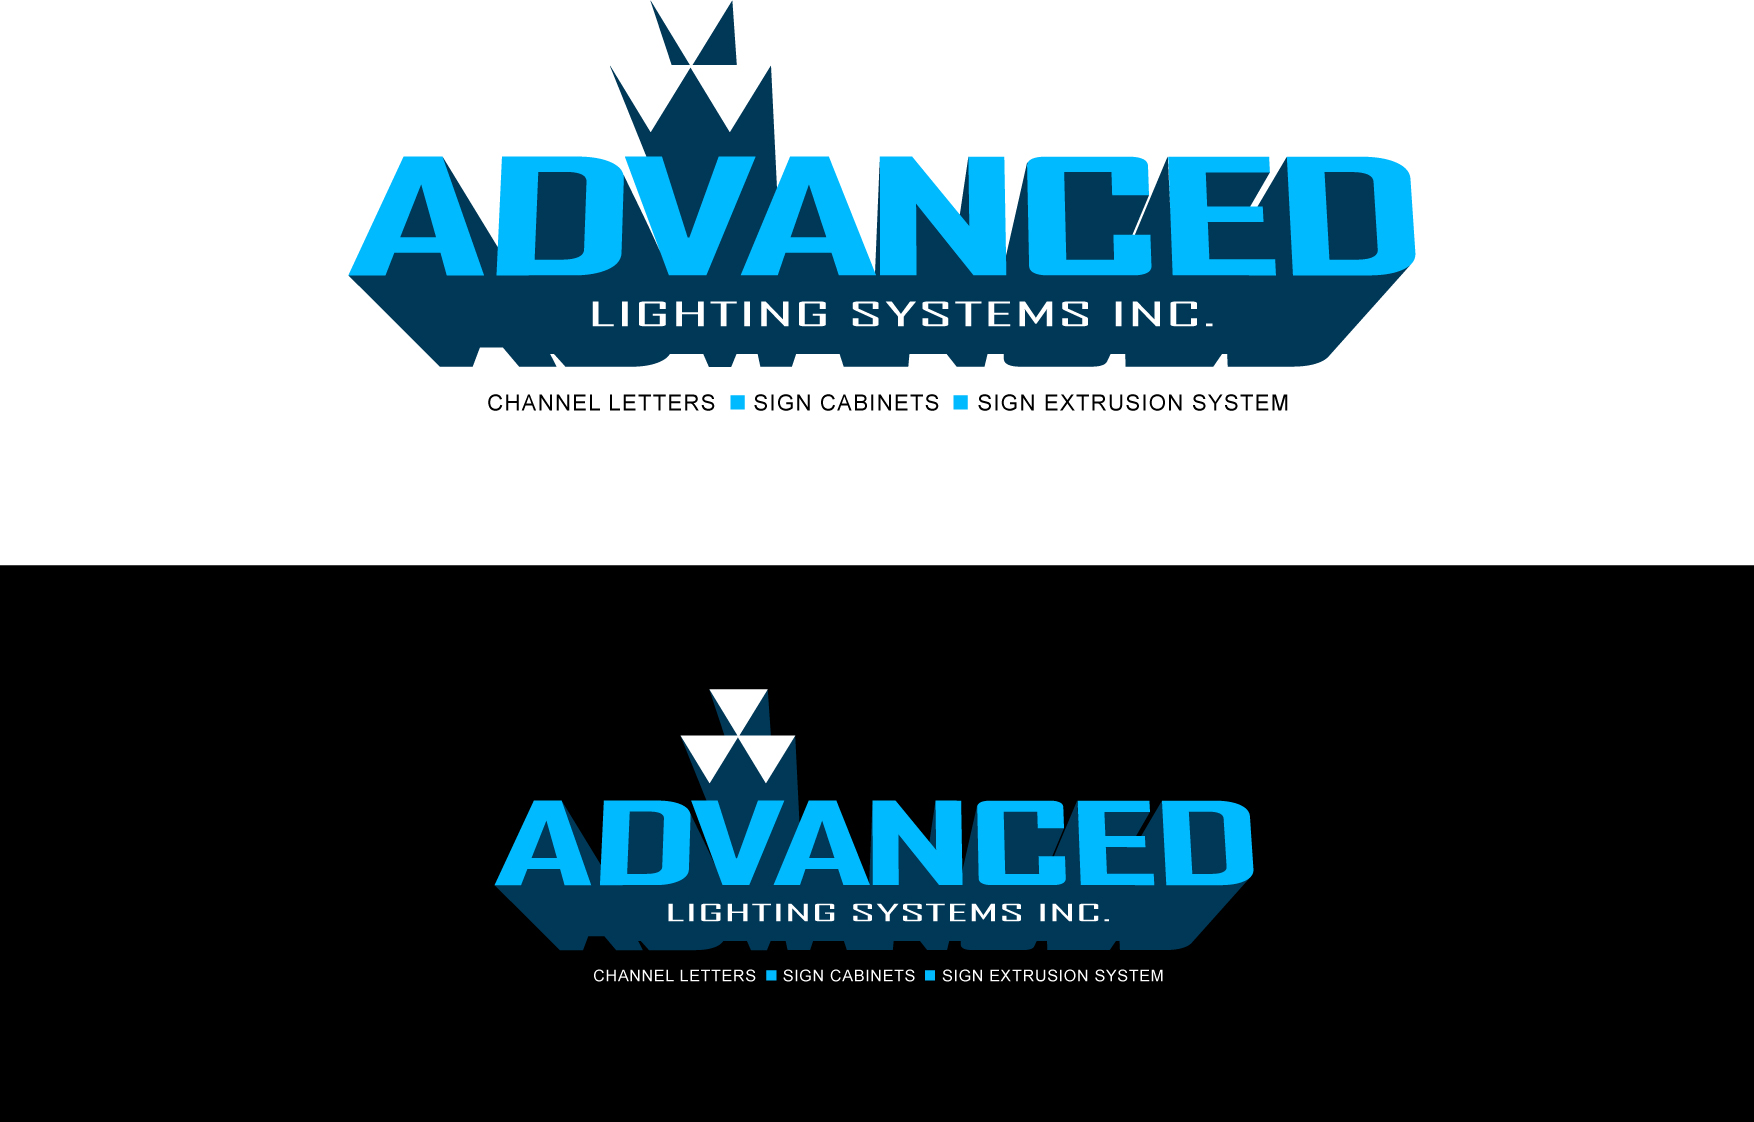 Logo Design by Wilfredo Mendoza - Entry No. 172 in the Logo Design Contest New Logo Design Needed for  Company Advanced Lighting Systems Inc..